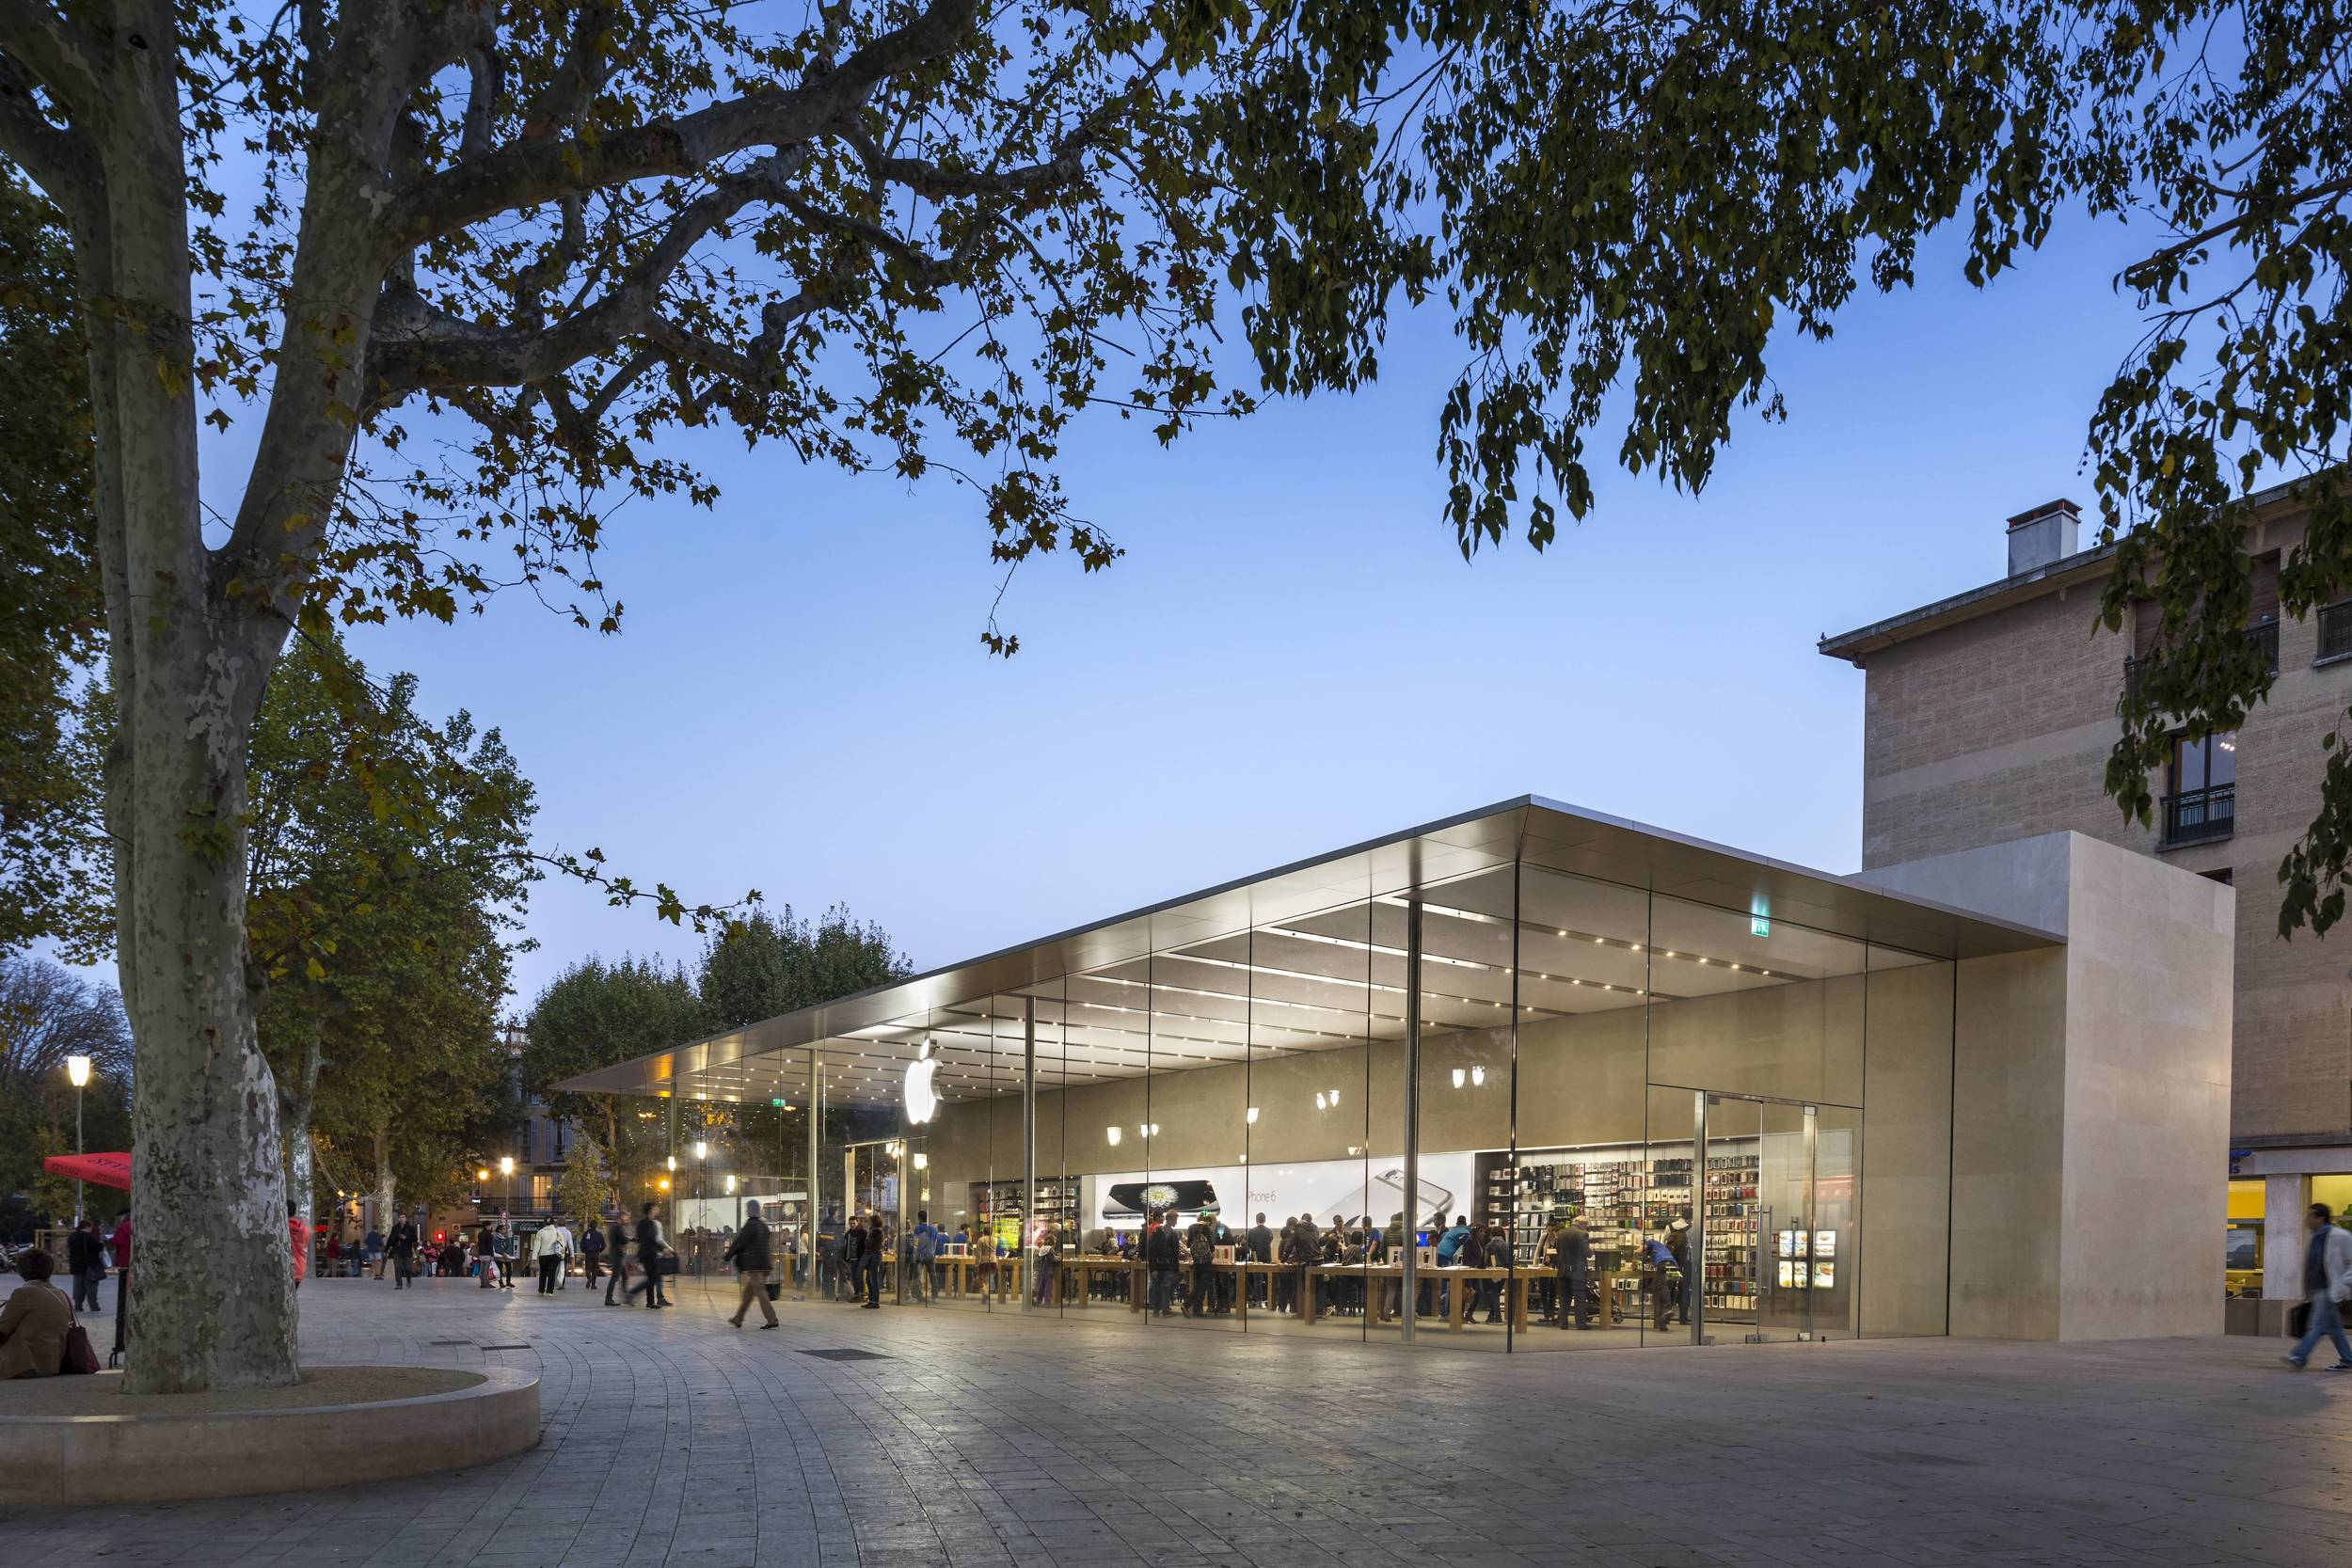 Apple stores     Interior Design   Architecture Apple Store   Aix en Provence  France